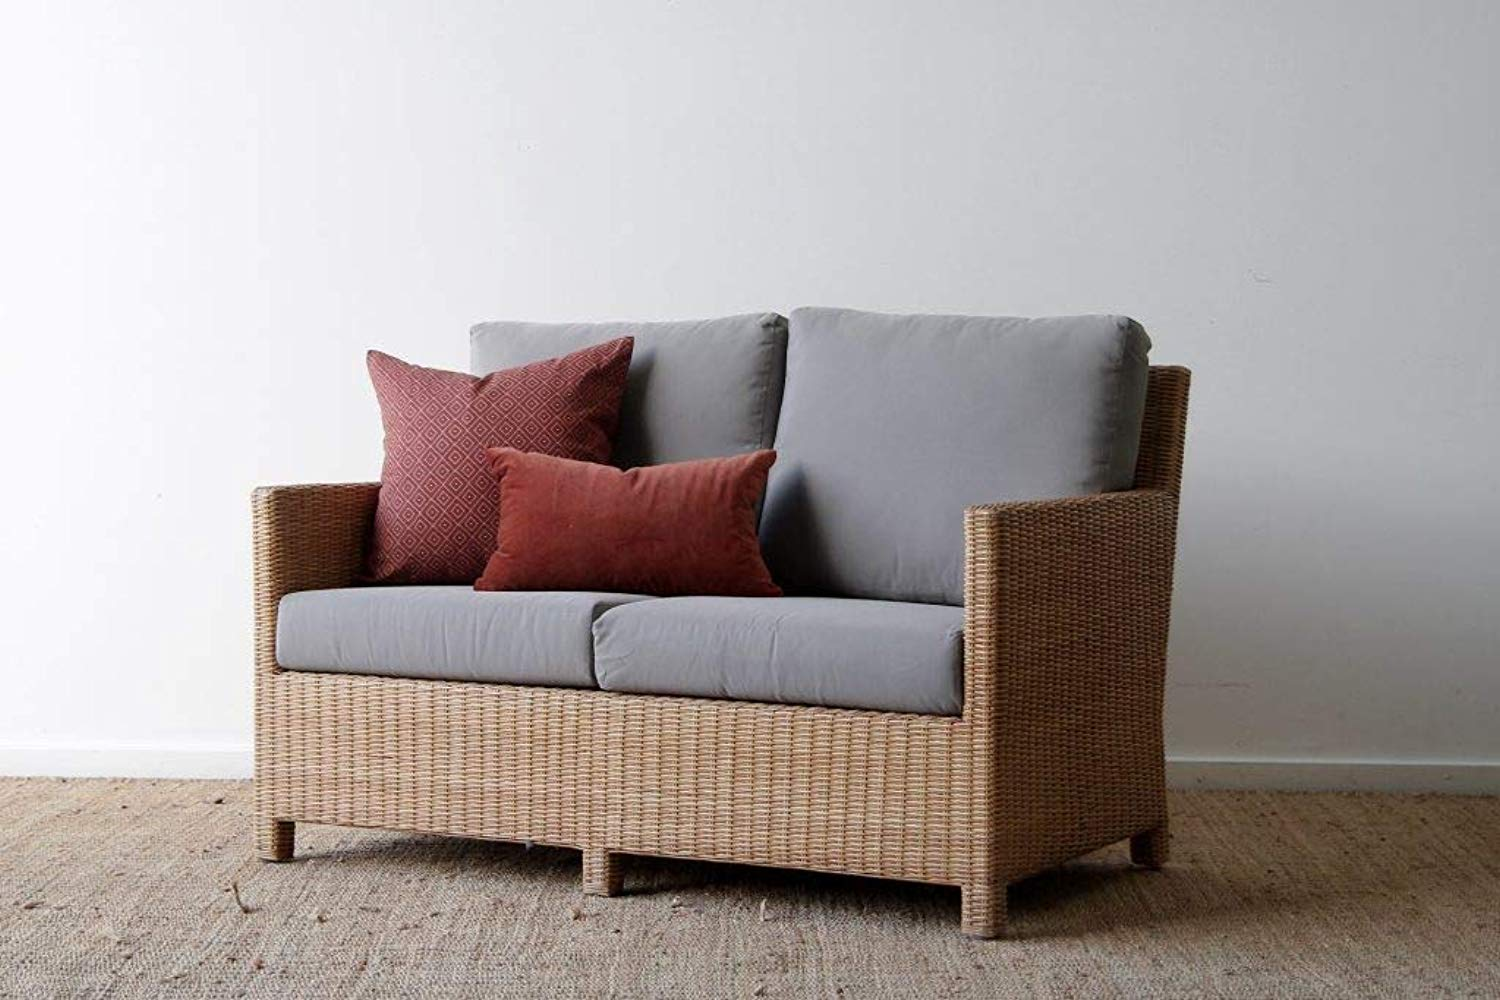 IRA 2 Seating Sofa Set Balcony - IRA Furniture